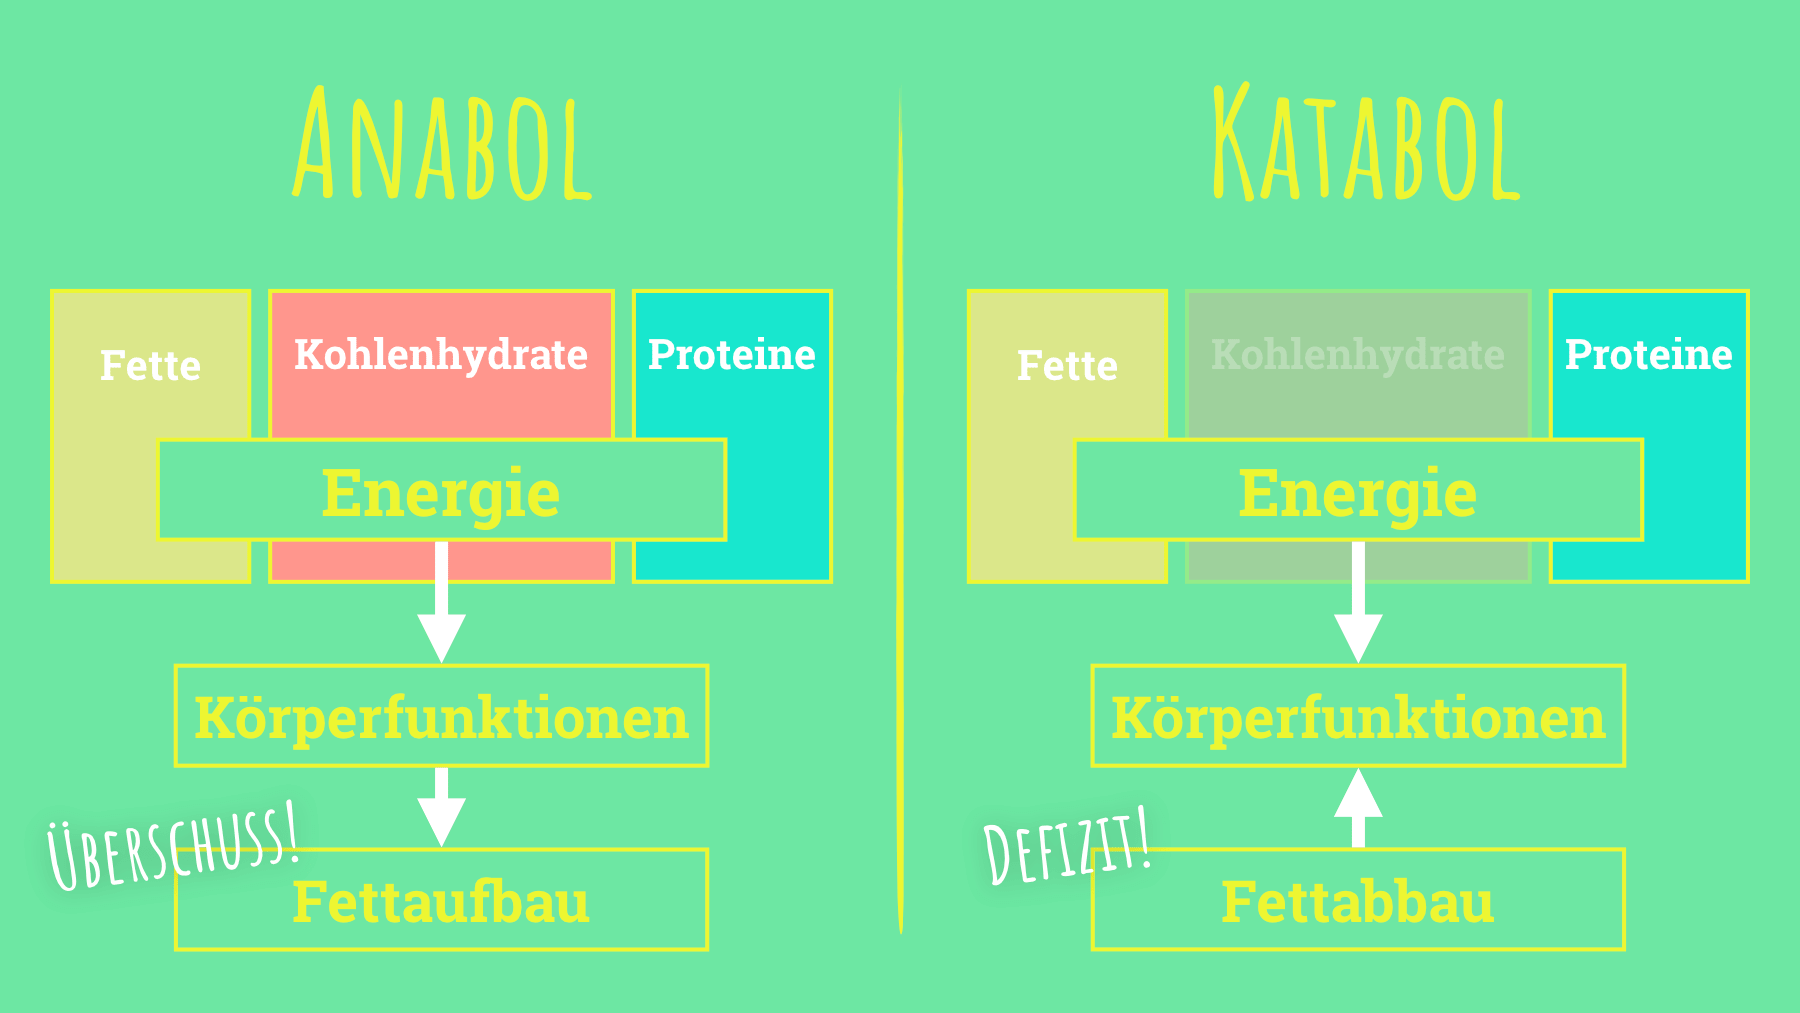 Low Carb Check - Vergleich Anabol vs. Katabol